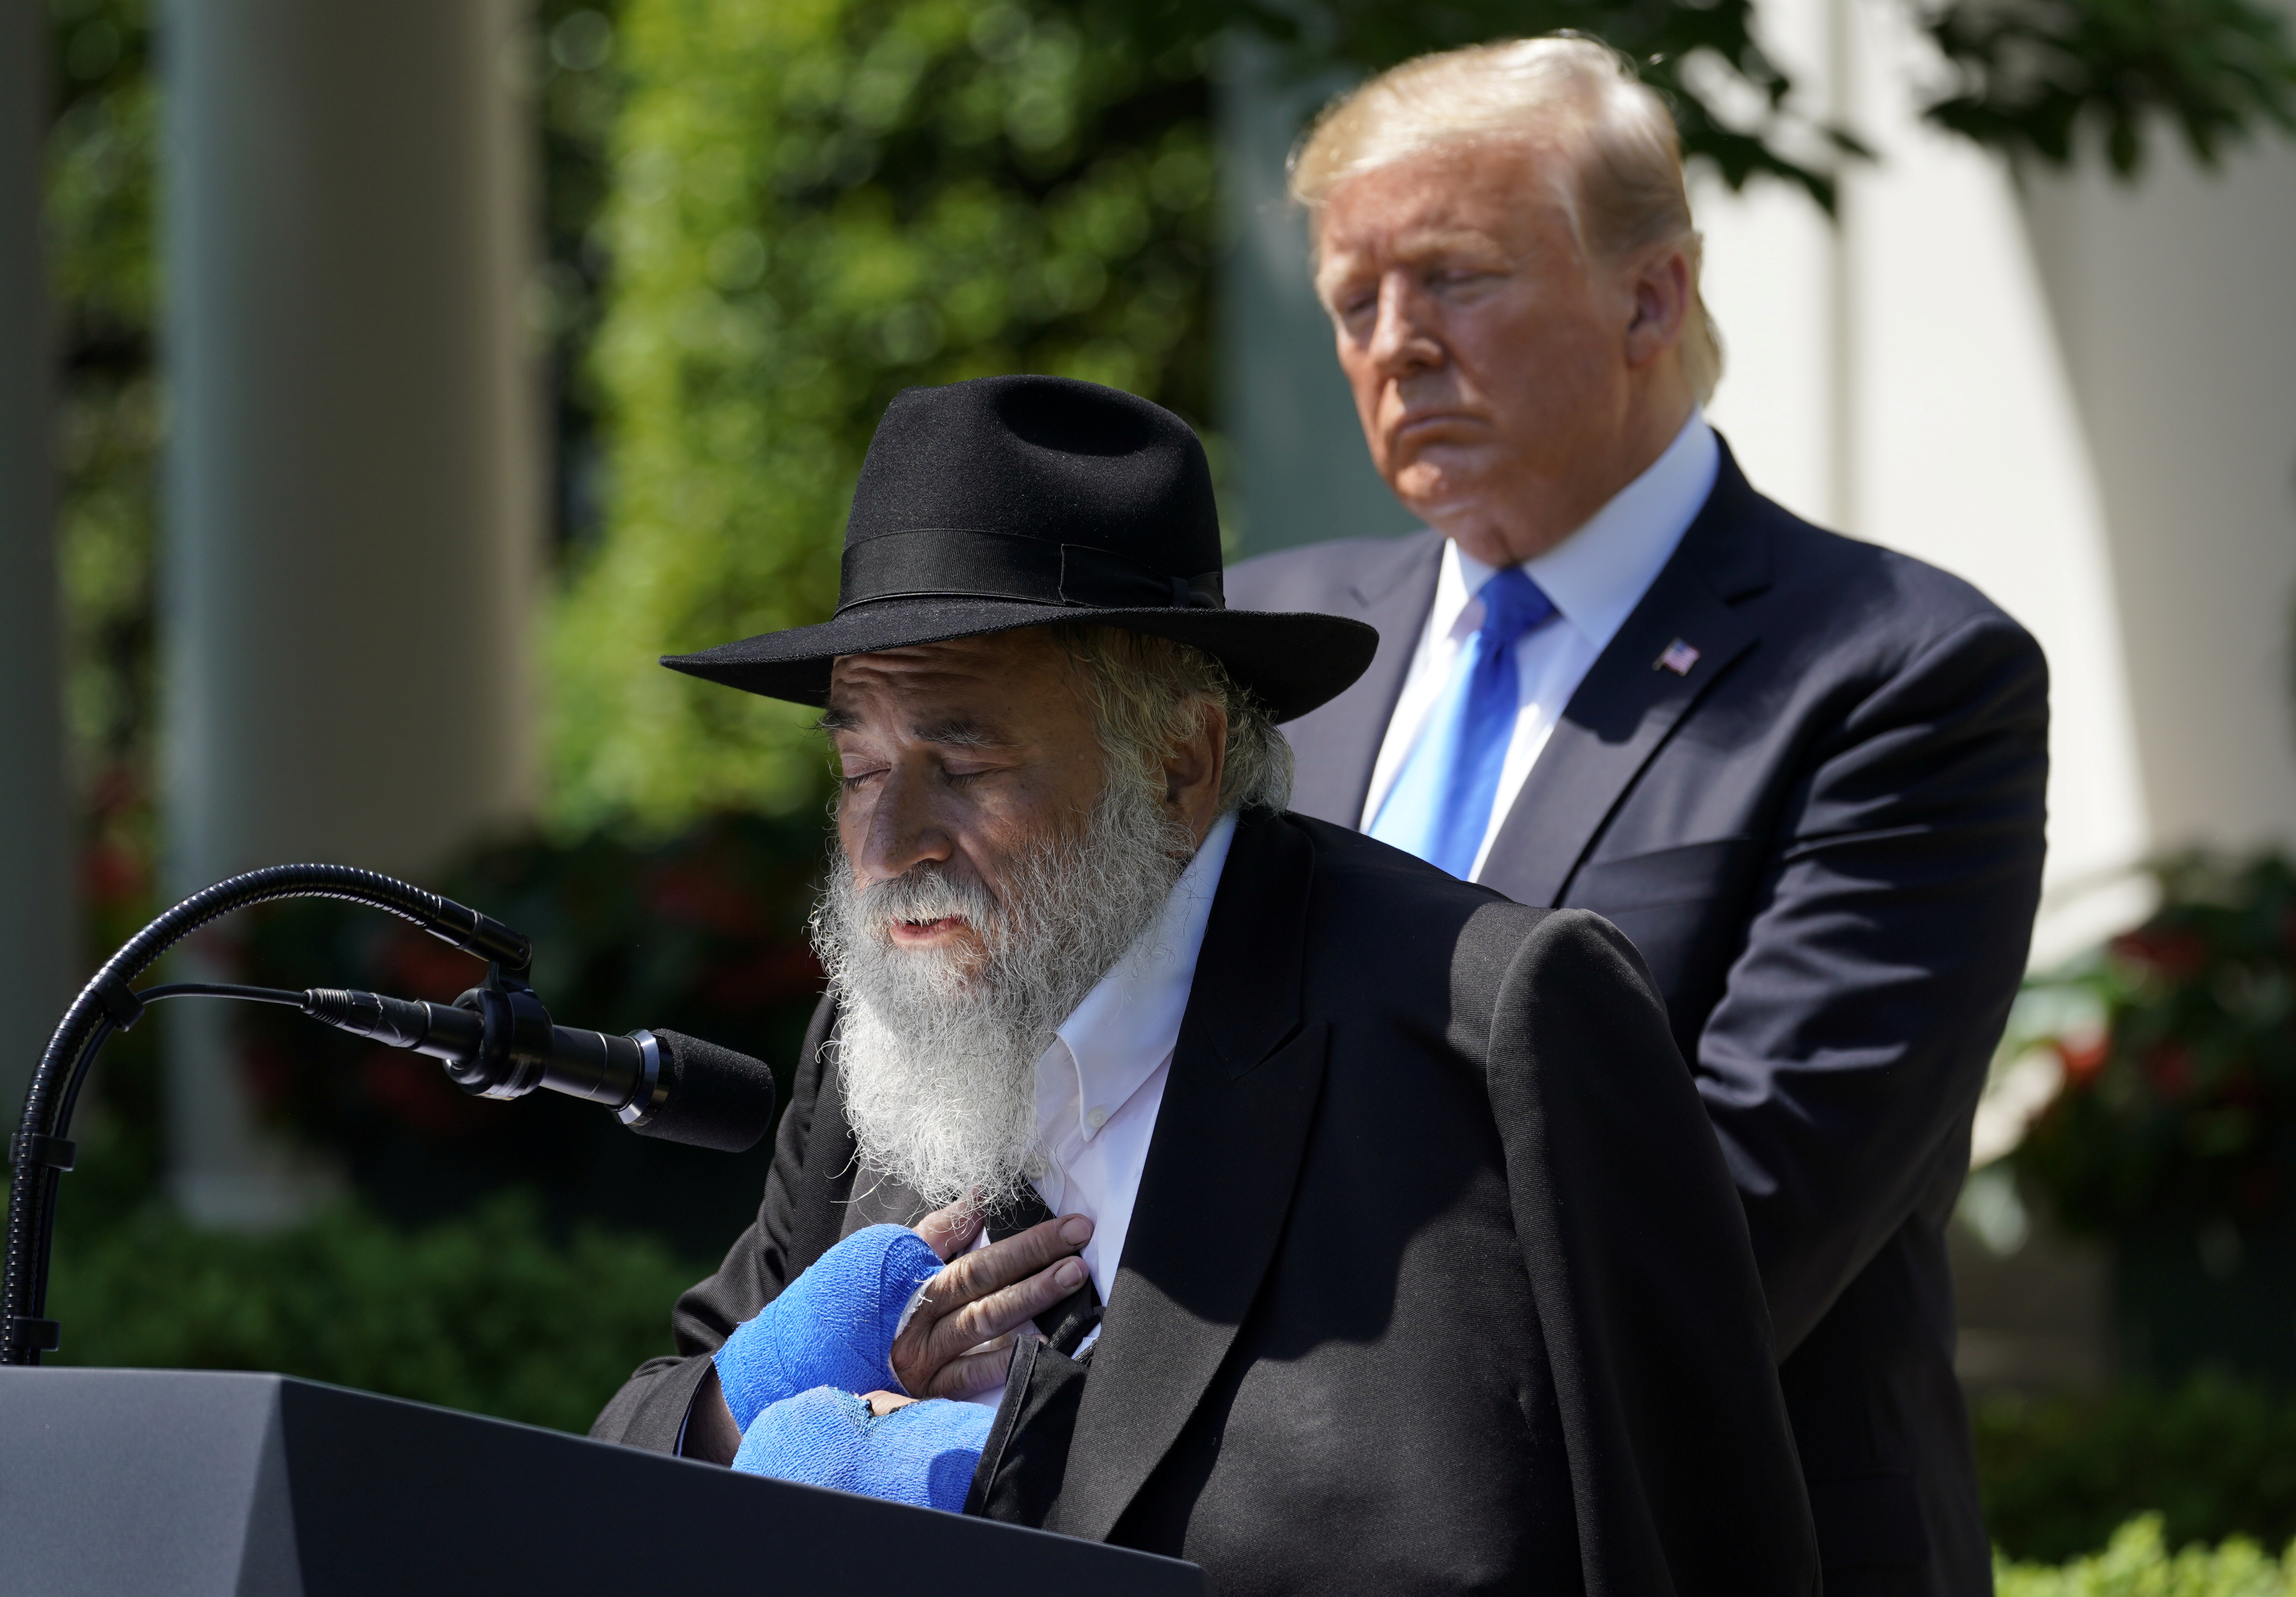 "Rabbi Yisroel Goldstein, injured in the recent shooting at the Congregation Chabad synagogue in Poway, California, speaks as U.S. President Donald Trump looks on during the ""National Day of Prayer"" Service in the Rose Garden at the White House in Washington, U.S., May 2, 2019. REUTERS/Kevin Lamarque - RC1A115FDB50"